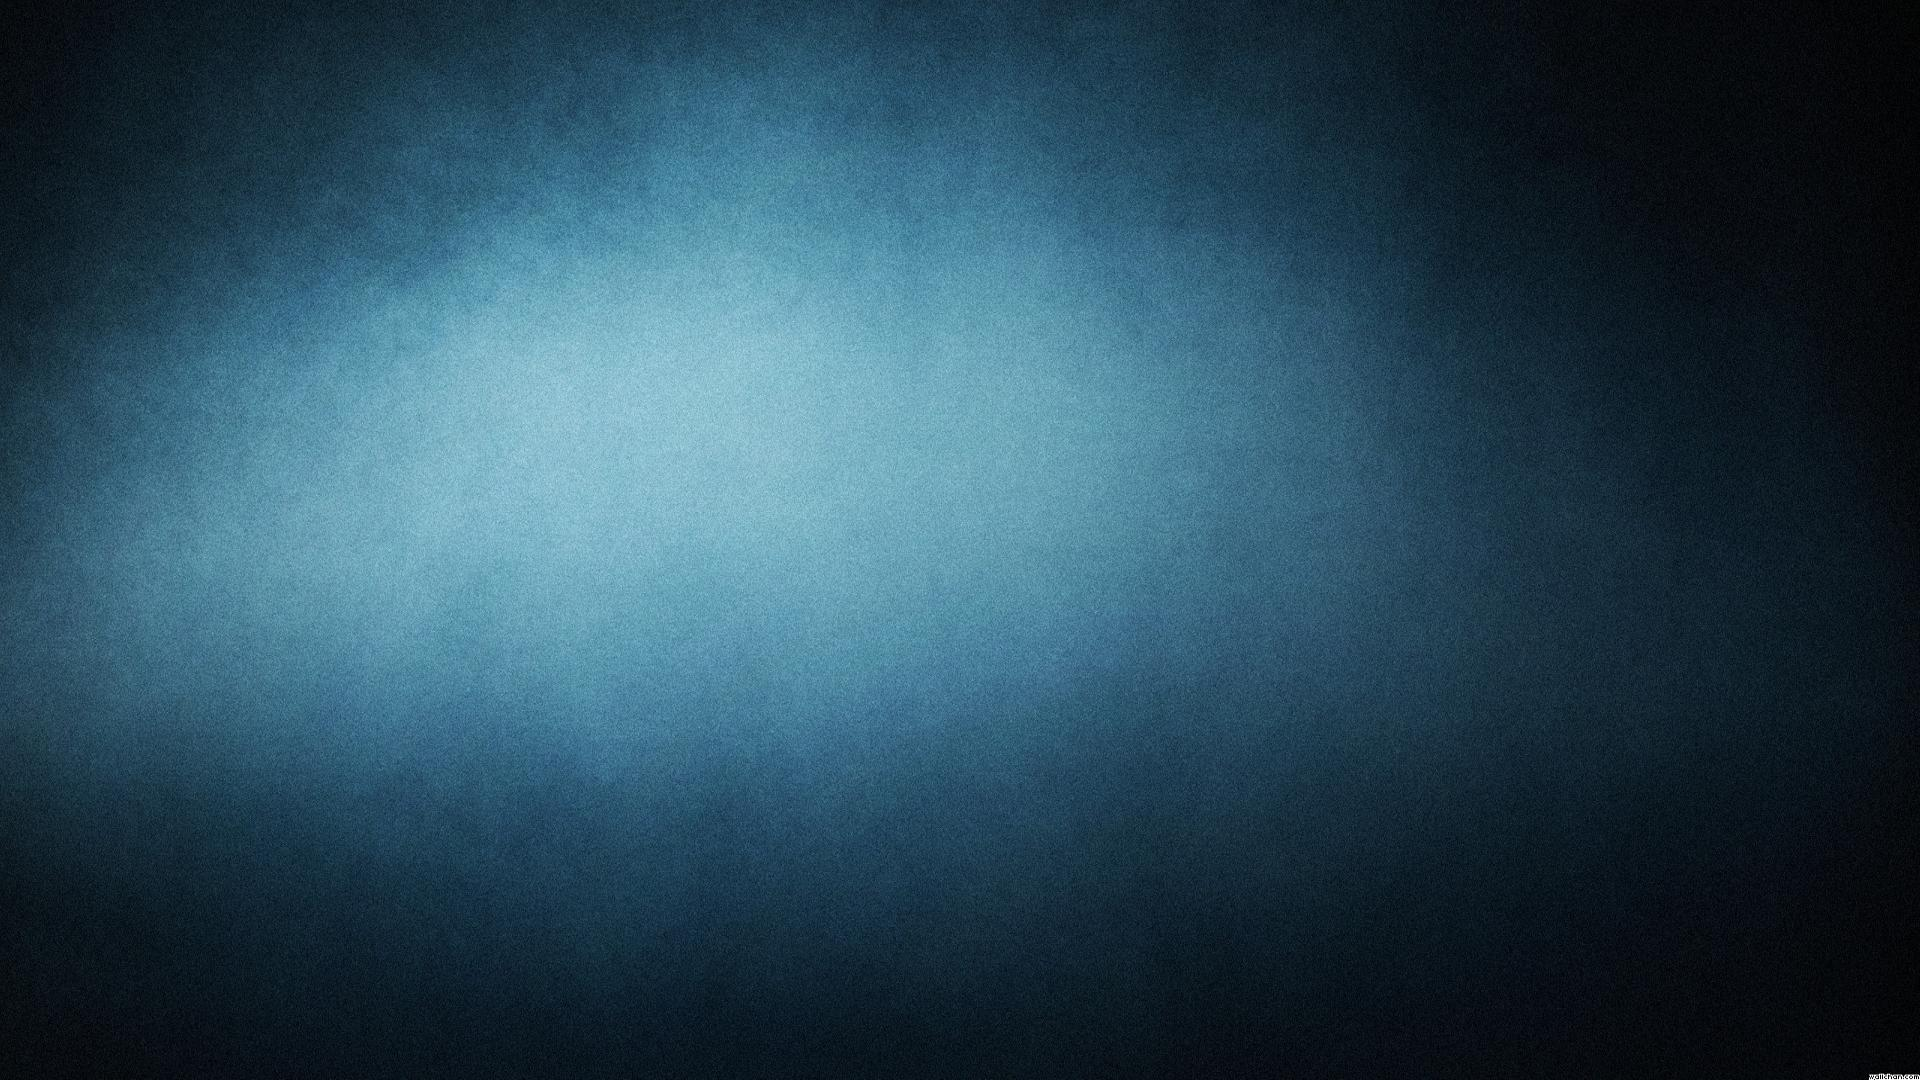 Plain Wallpapers HD lights blue